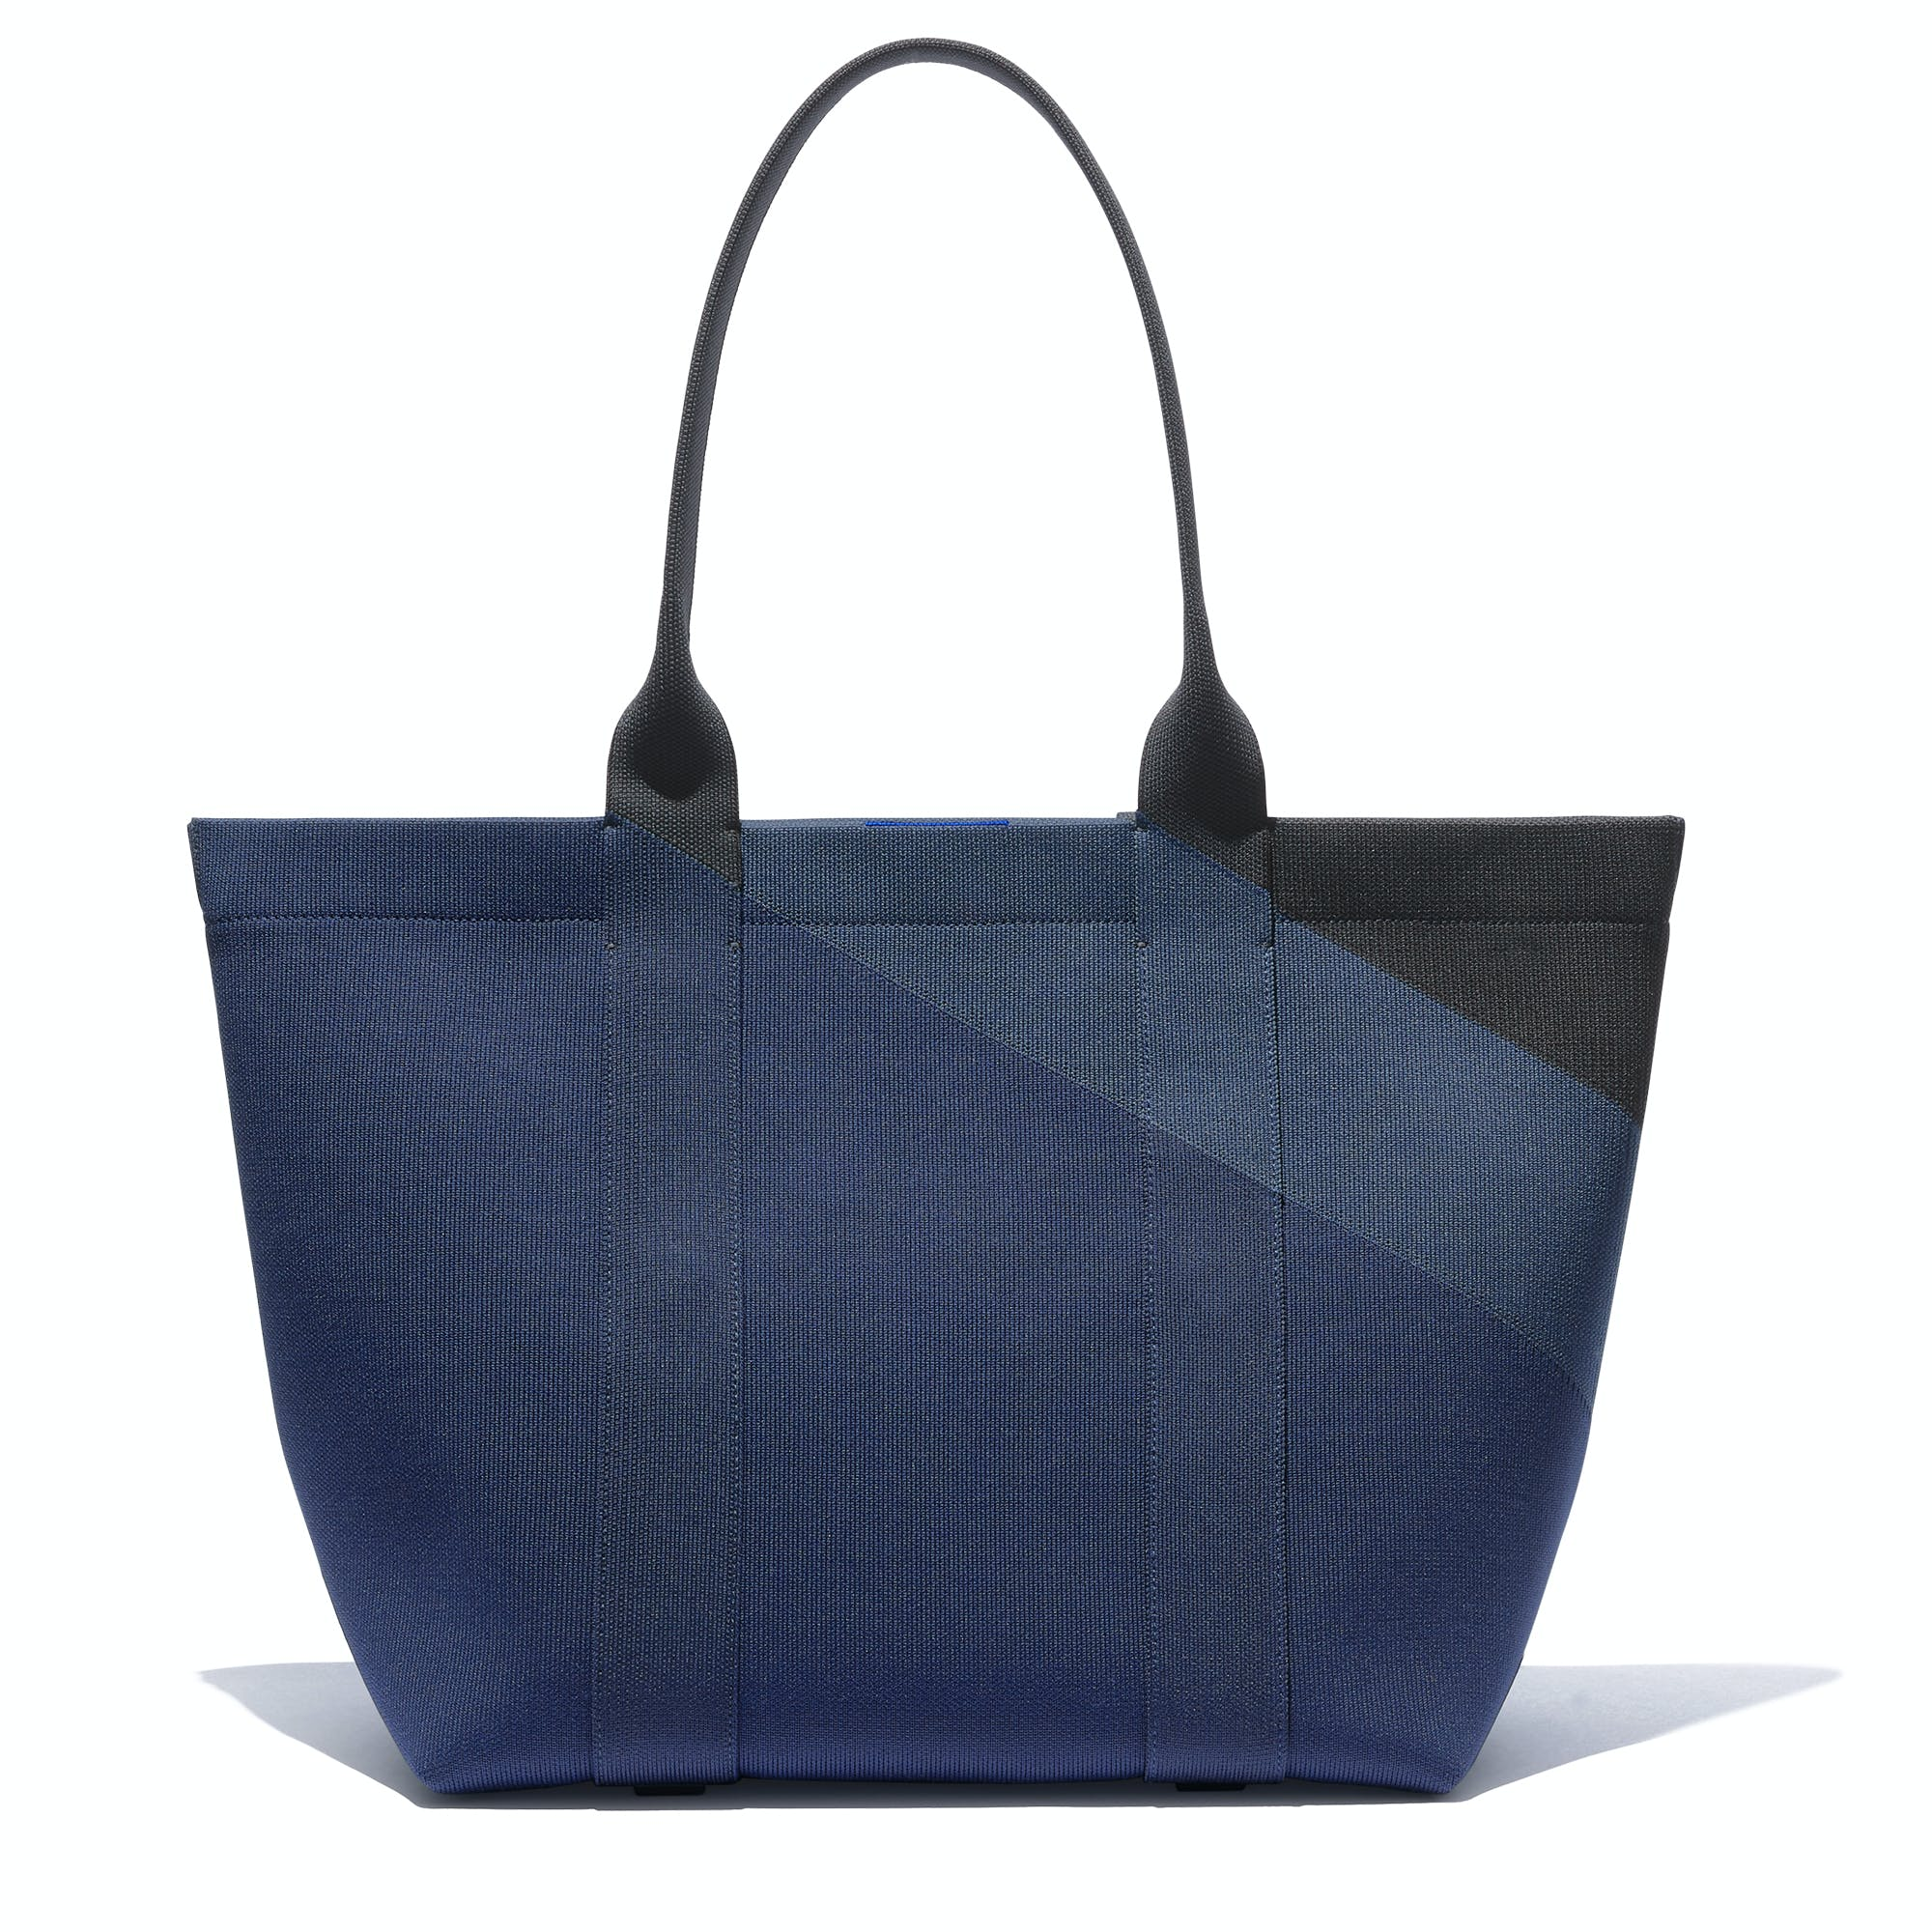 The Essential Tote in Midnight Navy shown from the front.